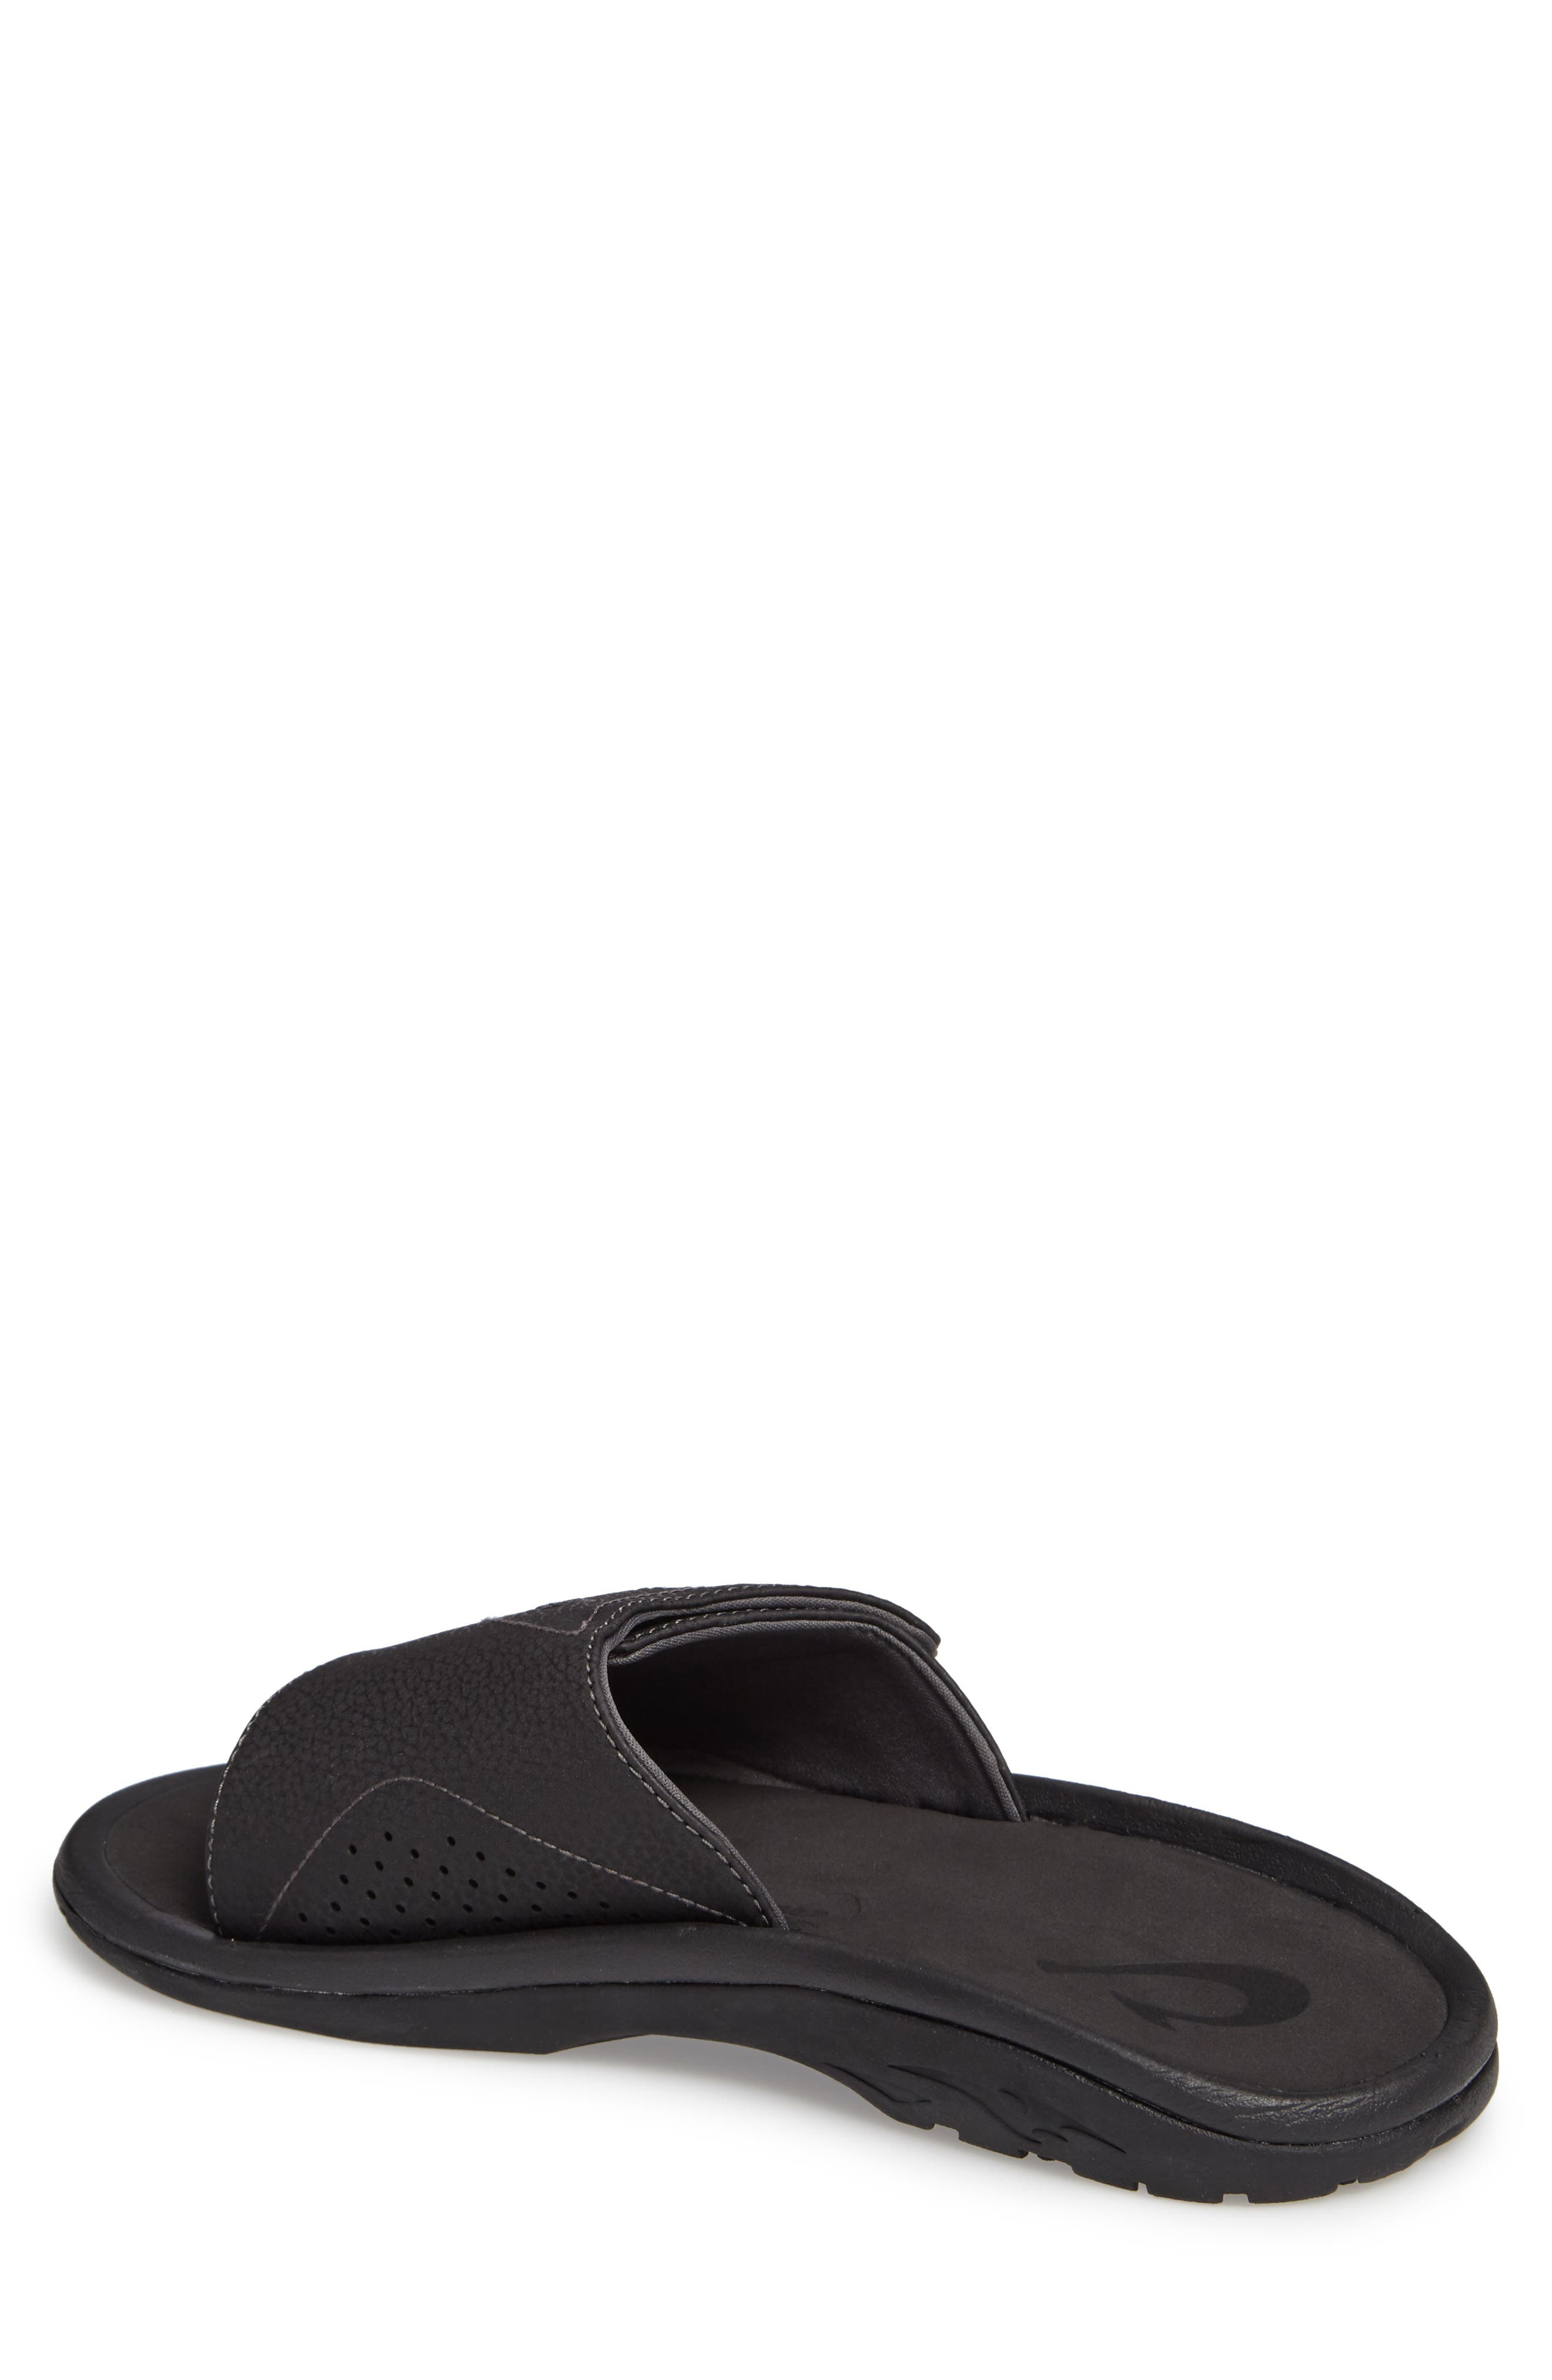 OLUKAI, Nalu Slide Sandal, Alternate thumbnail 2, color, BLACK/ BLACK